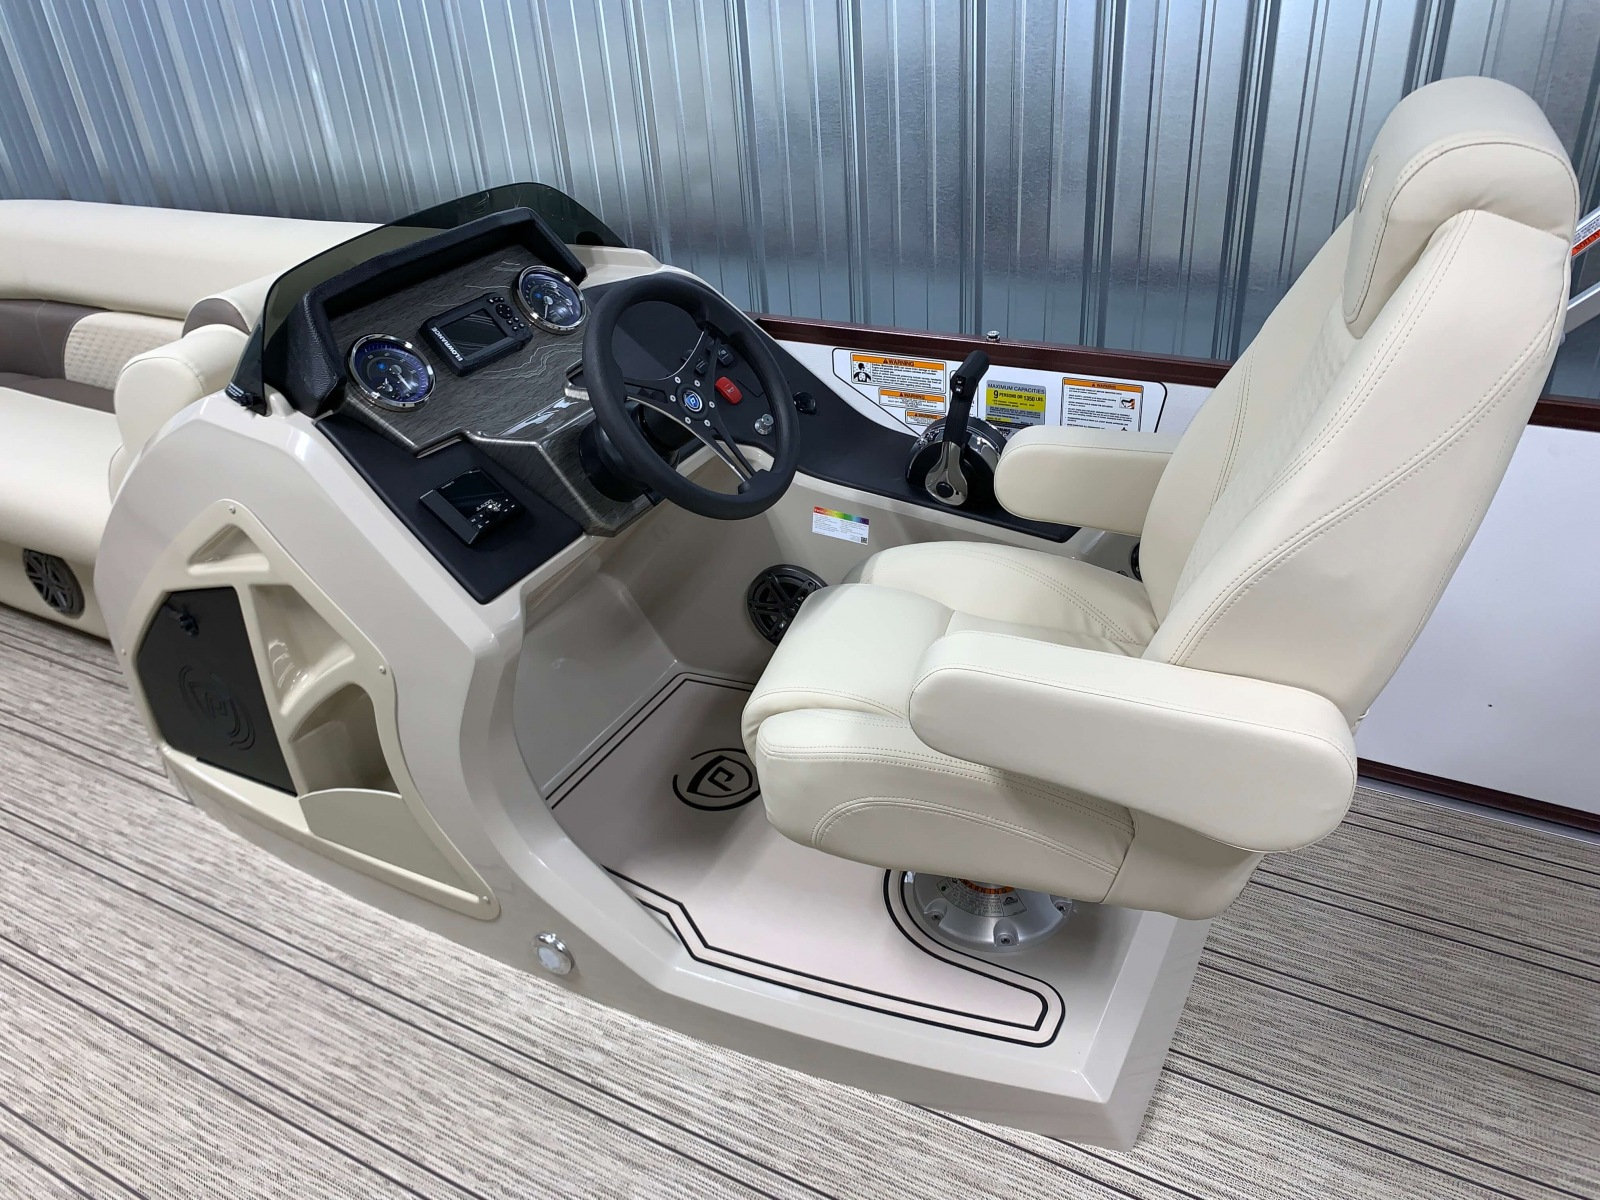 2020-Premier-200-Sunsation-RE-Pontoon-Boat-Raised-Helm